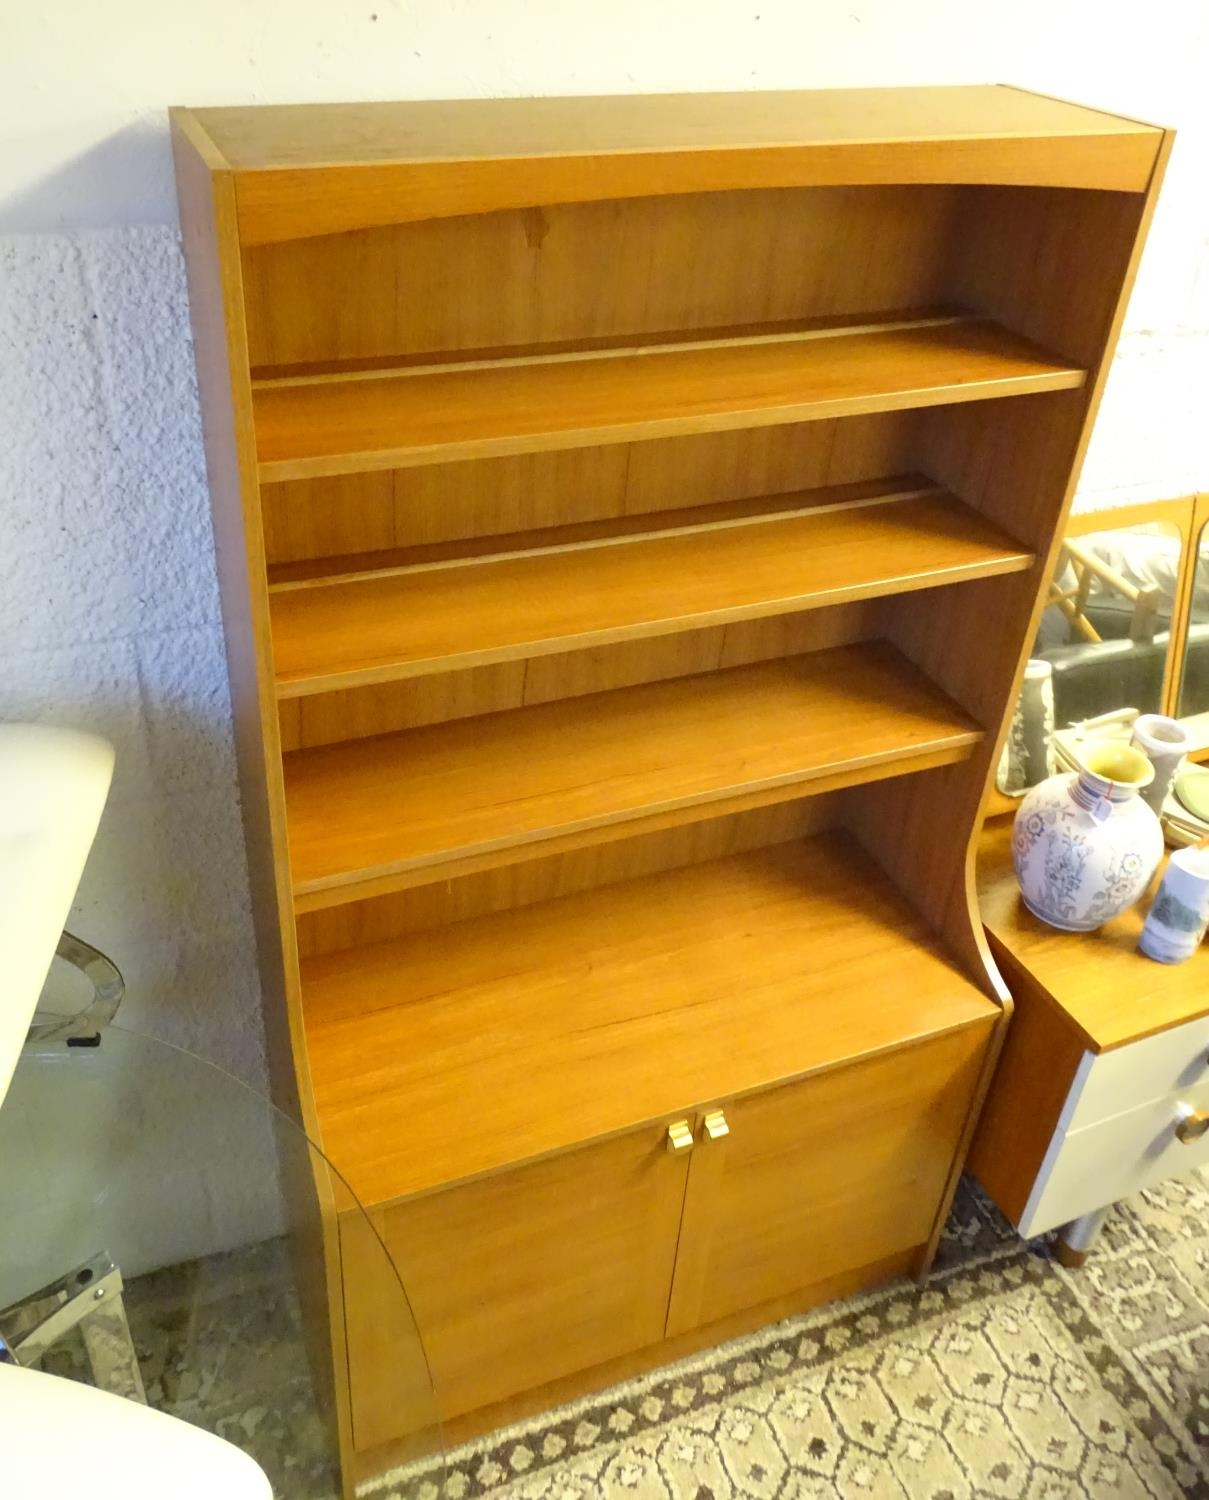 Vintage Retro, Mid Century: a Schreiber dresser bookcase, in teak finish with three shelves and - Image 5 of 7